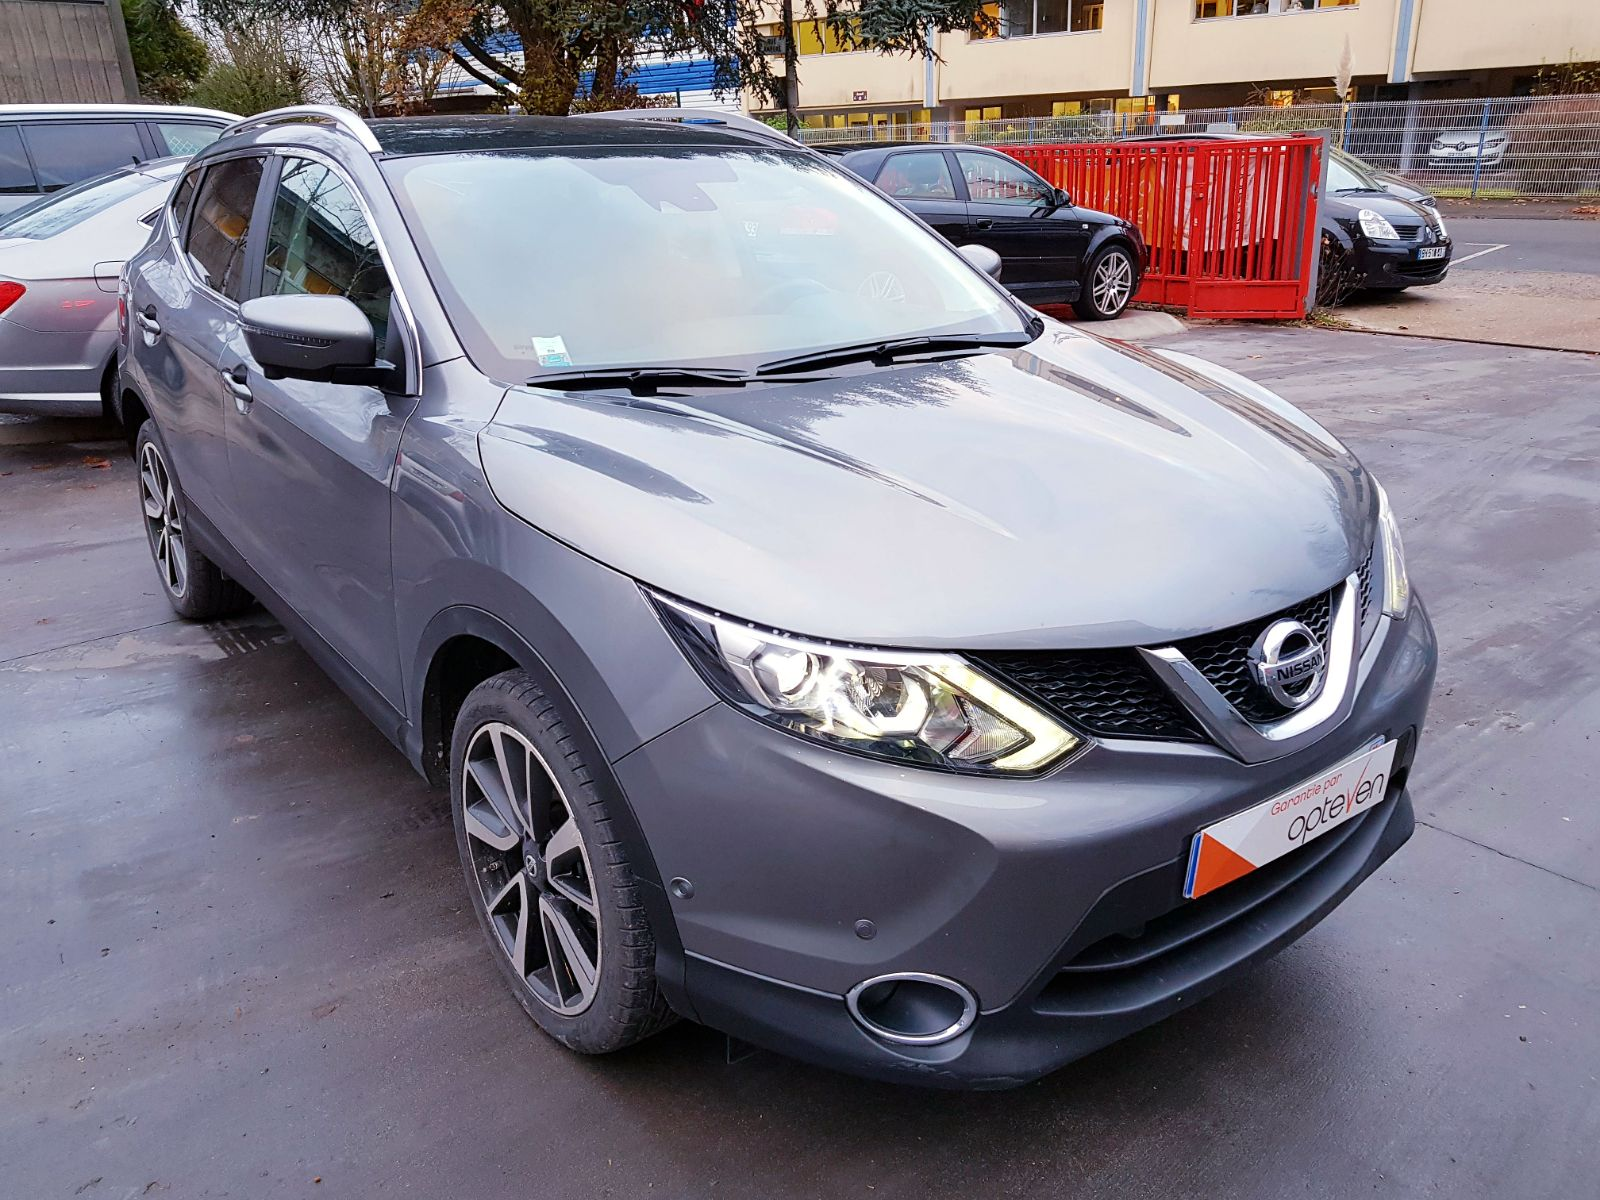 voiture nissan qashqai 1 2 dig t 115 stop start tekna xtronic a occasion essence 2015 5300. Black Bedroom Furniture Sets. Home Design Ideas